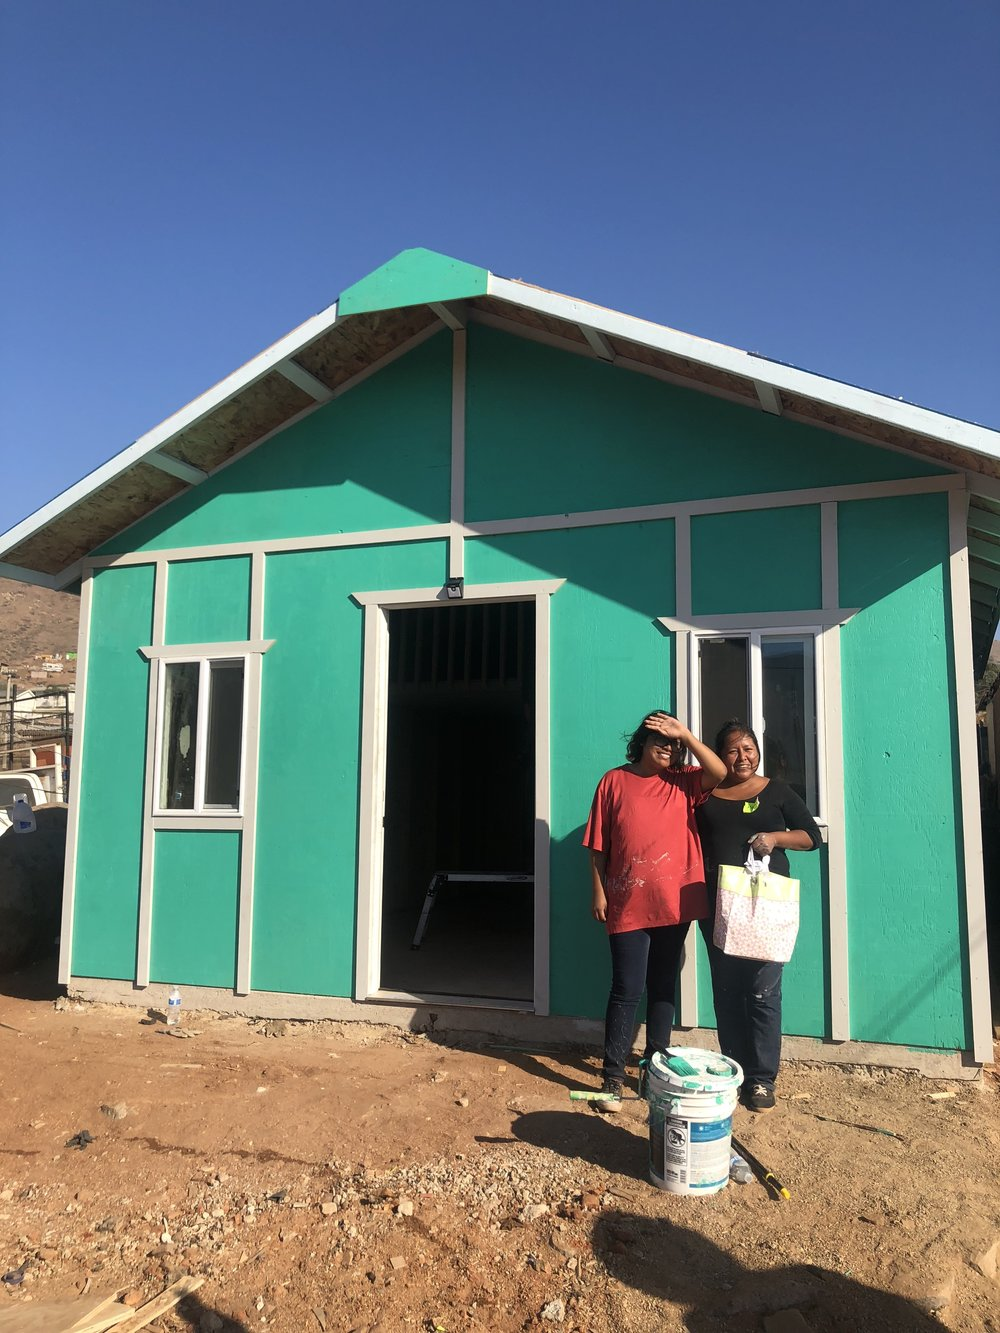 This is Marleni and Jacqueline in front of their new soon to be home. Marleni is a single mom working in factory making about 1050 pesos ($55.20 USD) a week. Jacqueline is 15 and hopes to be a neurosurgeon someday. Not pictured is Marleni's son, Angel, who is 8 years old. He was there and very excited for his new house. Marleni works at night and is not able to be home most of the time to make sure her children were safe. Their original house did not have a secure lock and Marleni worried about her kids constantly. The most important thing to her was improved security. Best believe we provided that for her and seeing her cry tears of joy and appreciation towards us made me happy to put my name on that day.